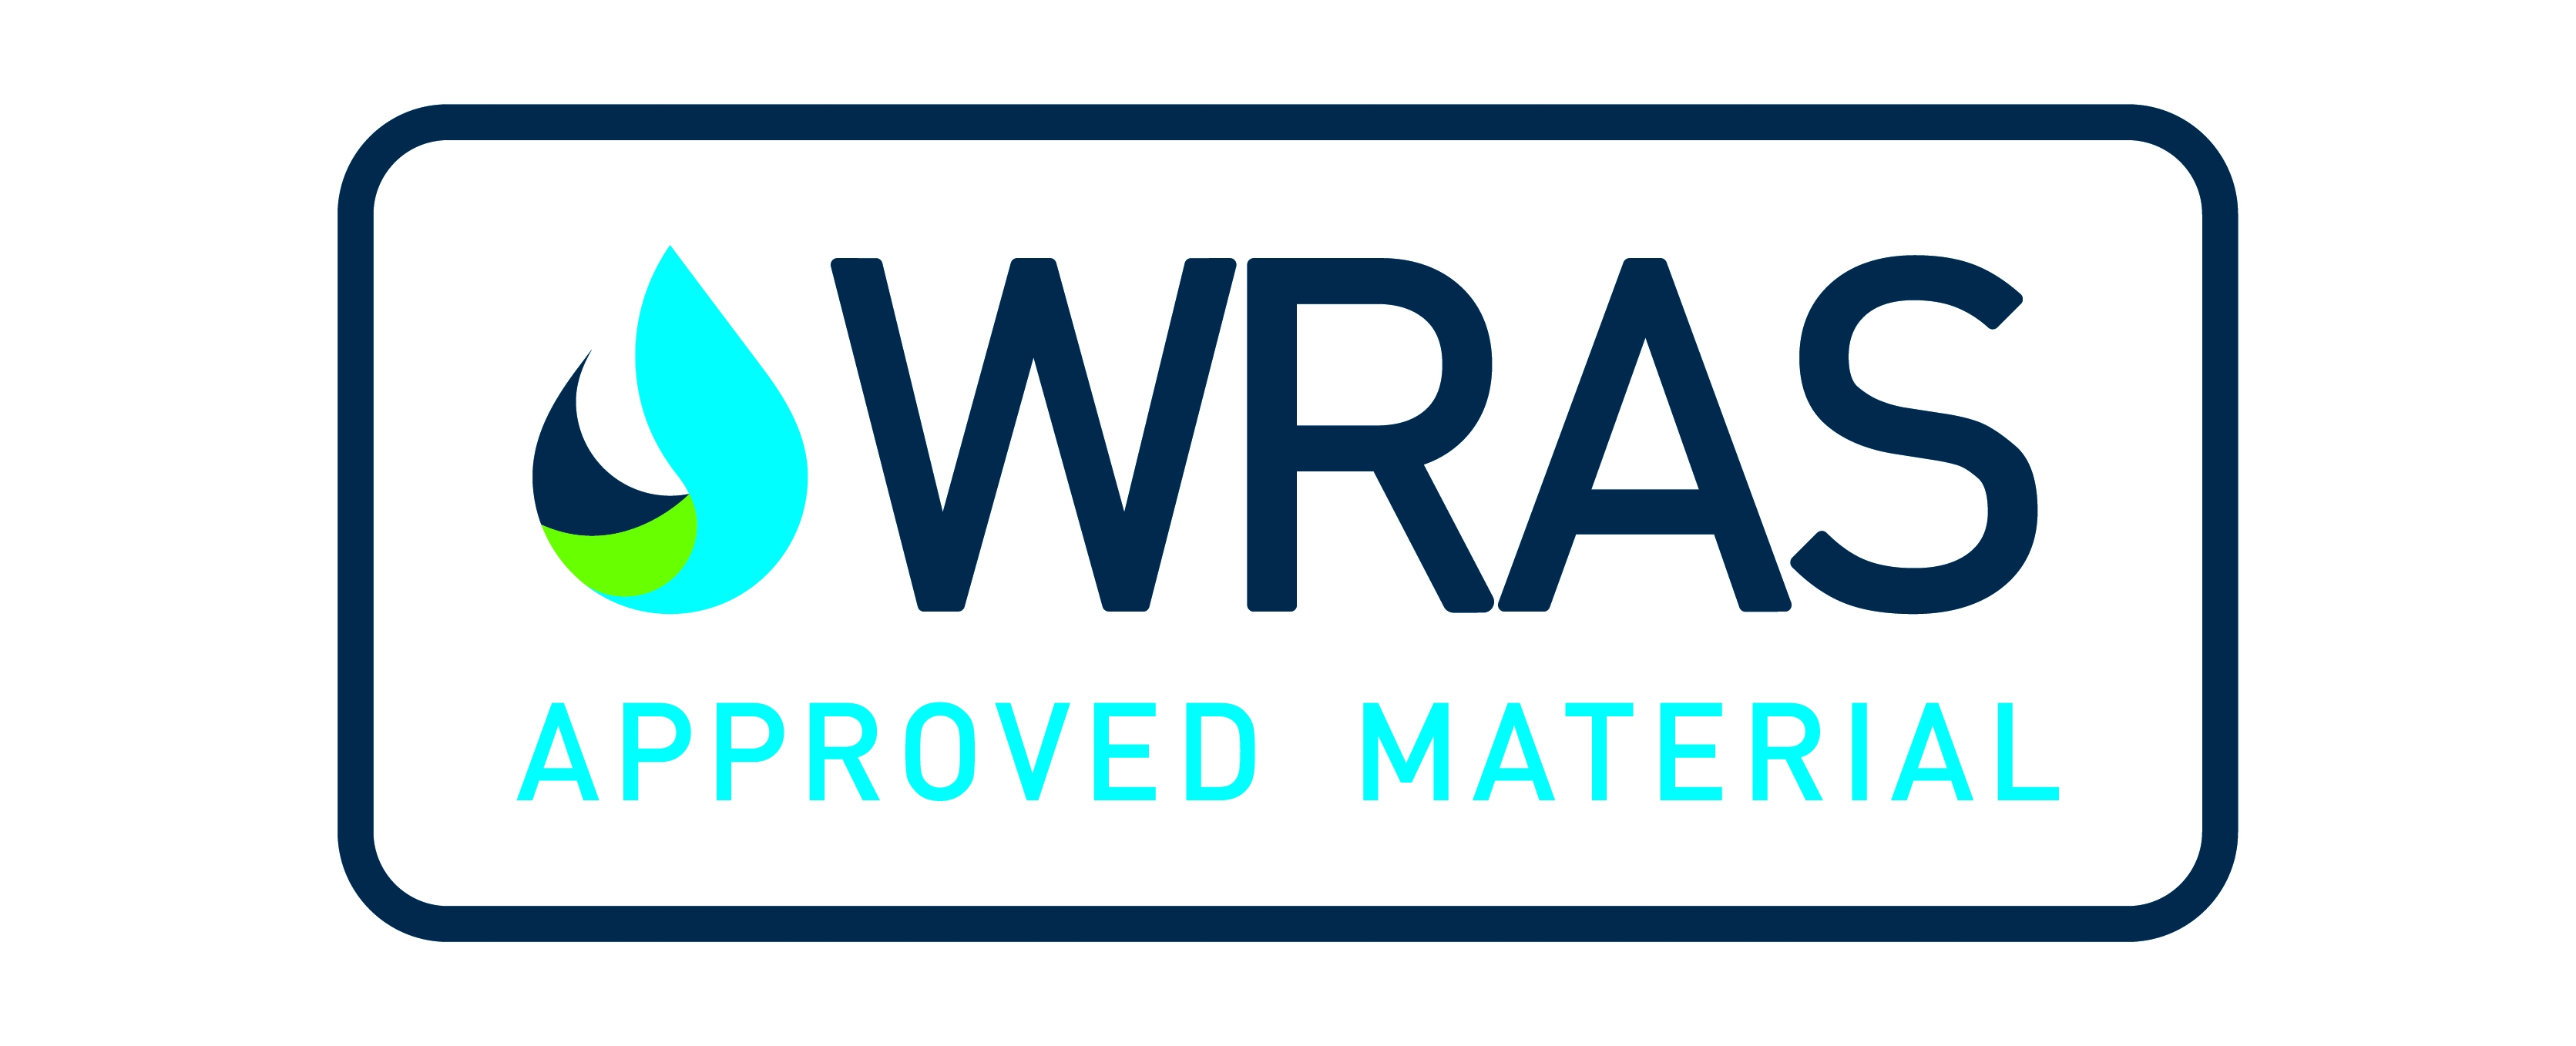 WRAS: Items which have passed full tests of effect on water Quality BS 6920